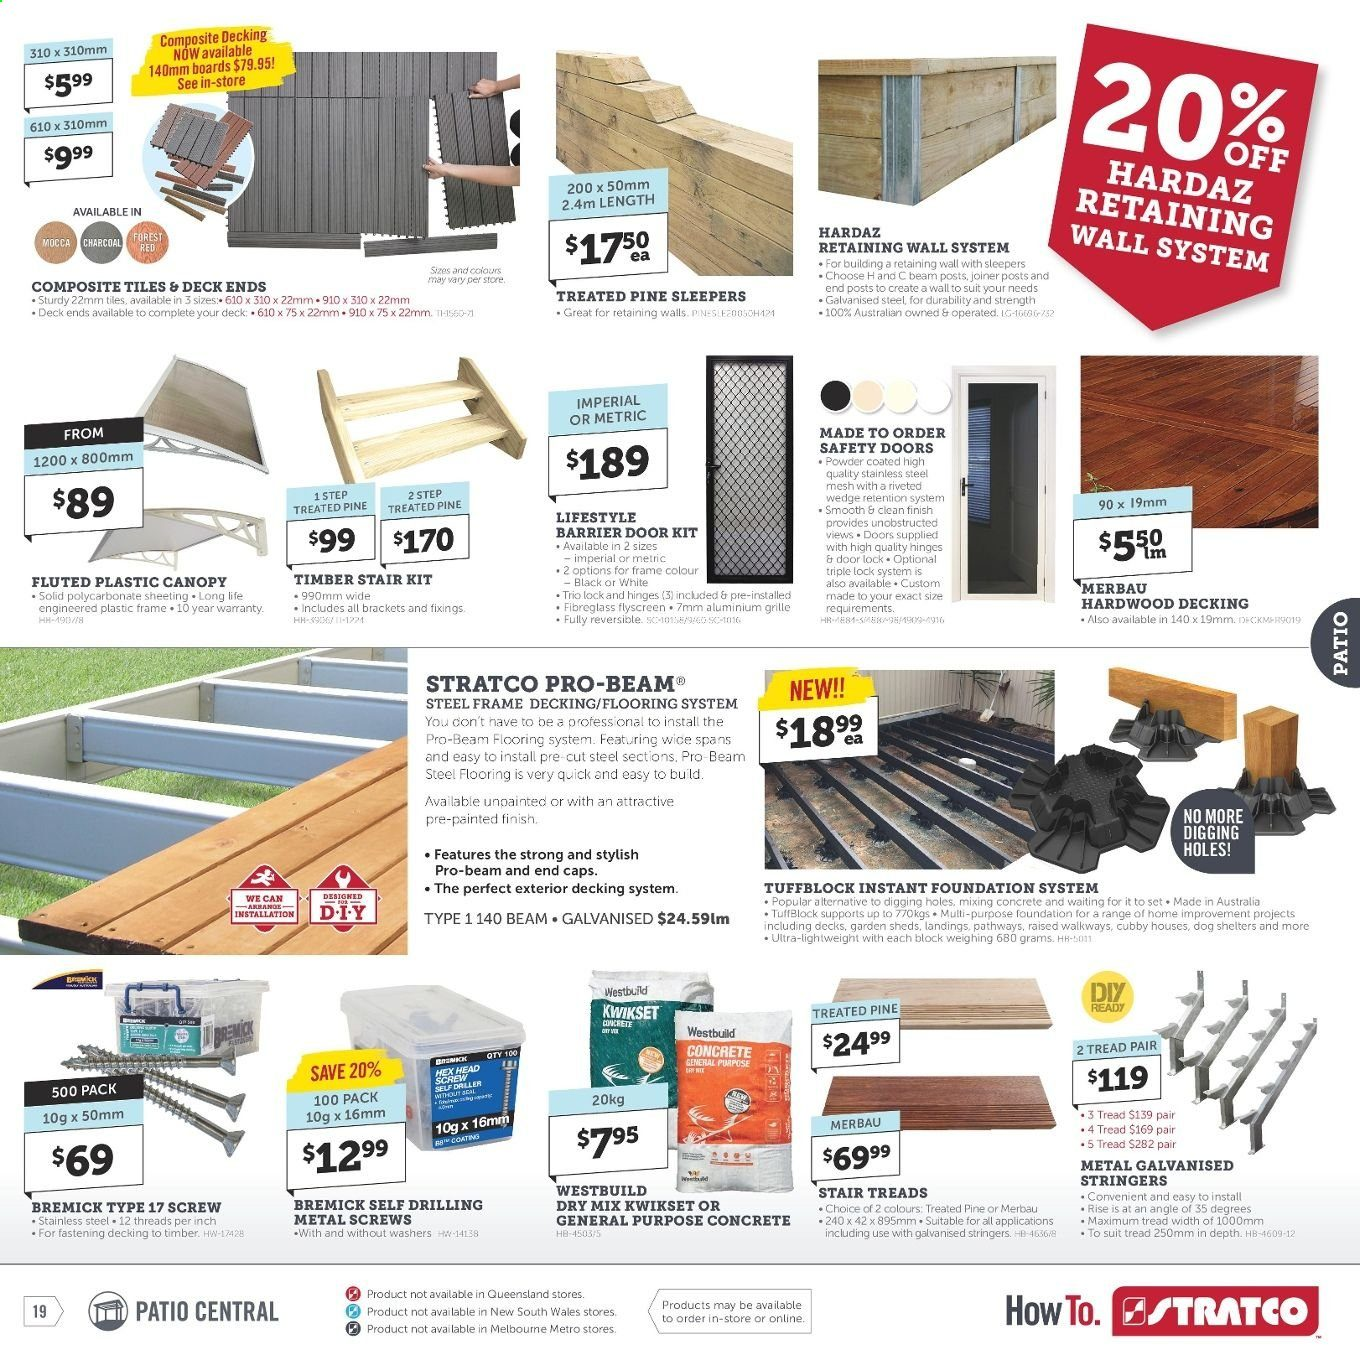 Stratco catalogue and weekly specials 28 6 2019 - 14 7 2019